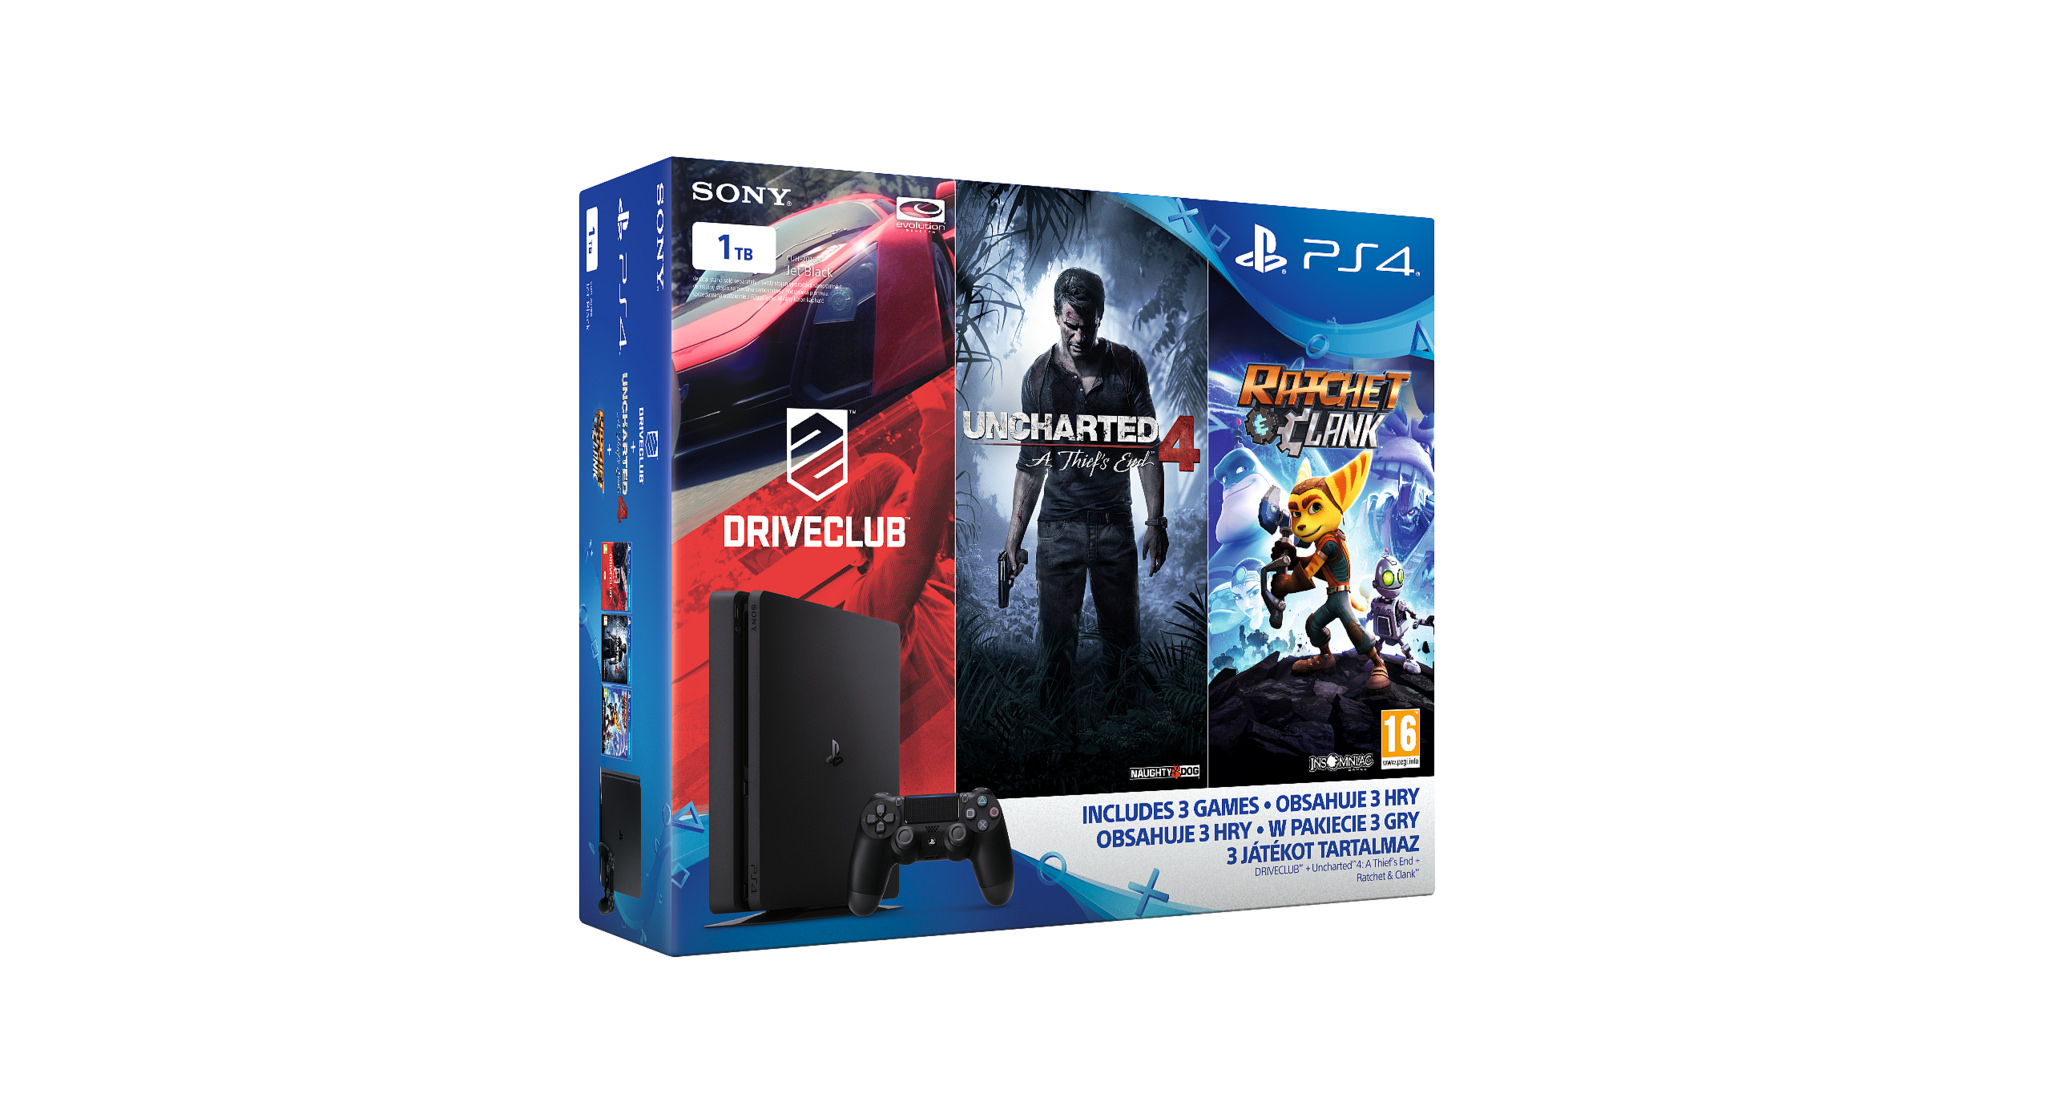 ps4-bundle-1